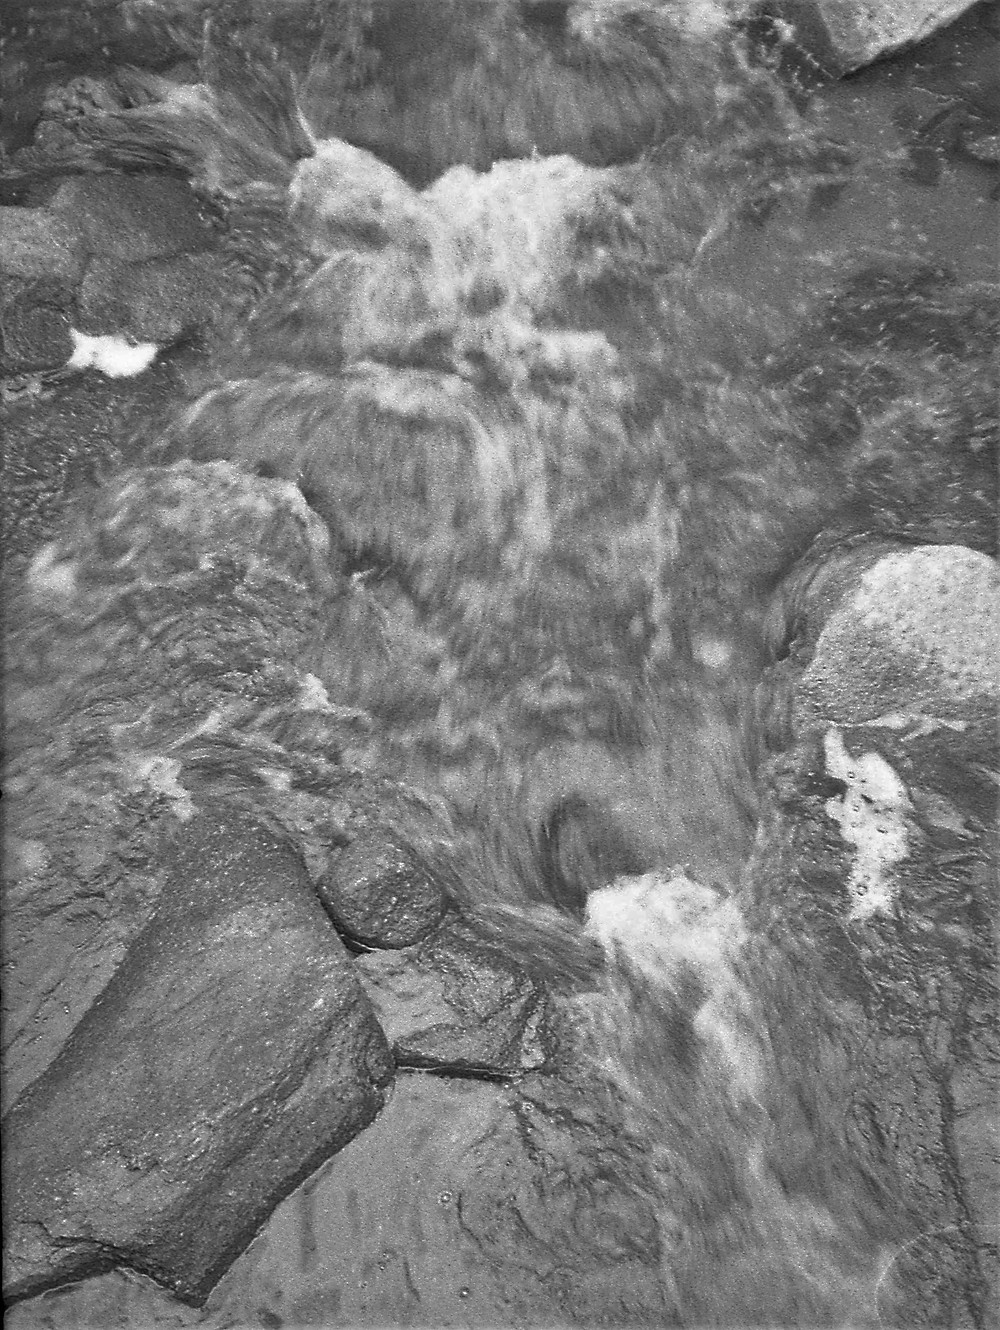 Water in motion; Patapsco River, Maryland